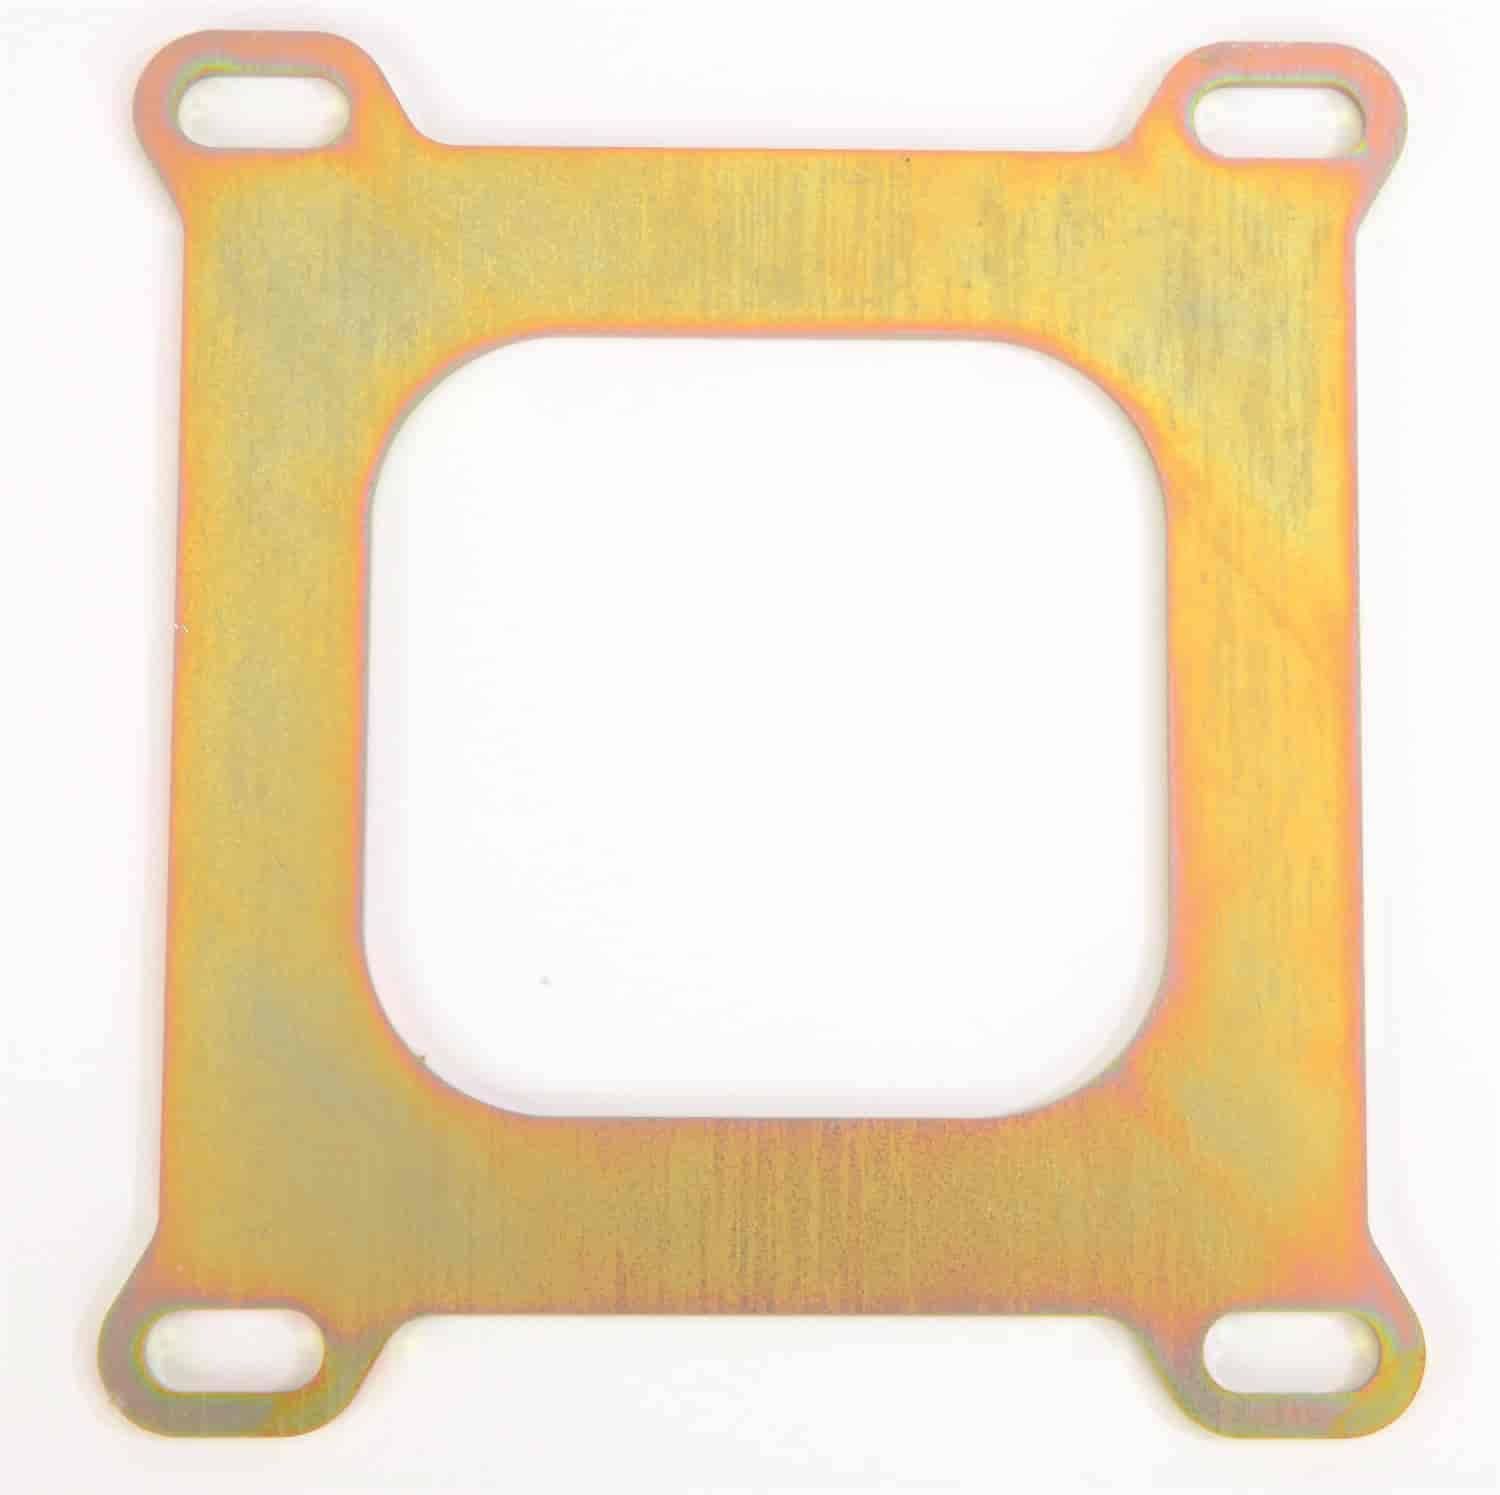 JEGS Performance Products 15442 - JEGS Dual Pattern Intake to Square Flange Carb Adapter Plate